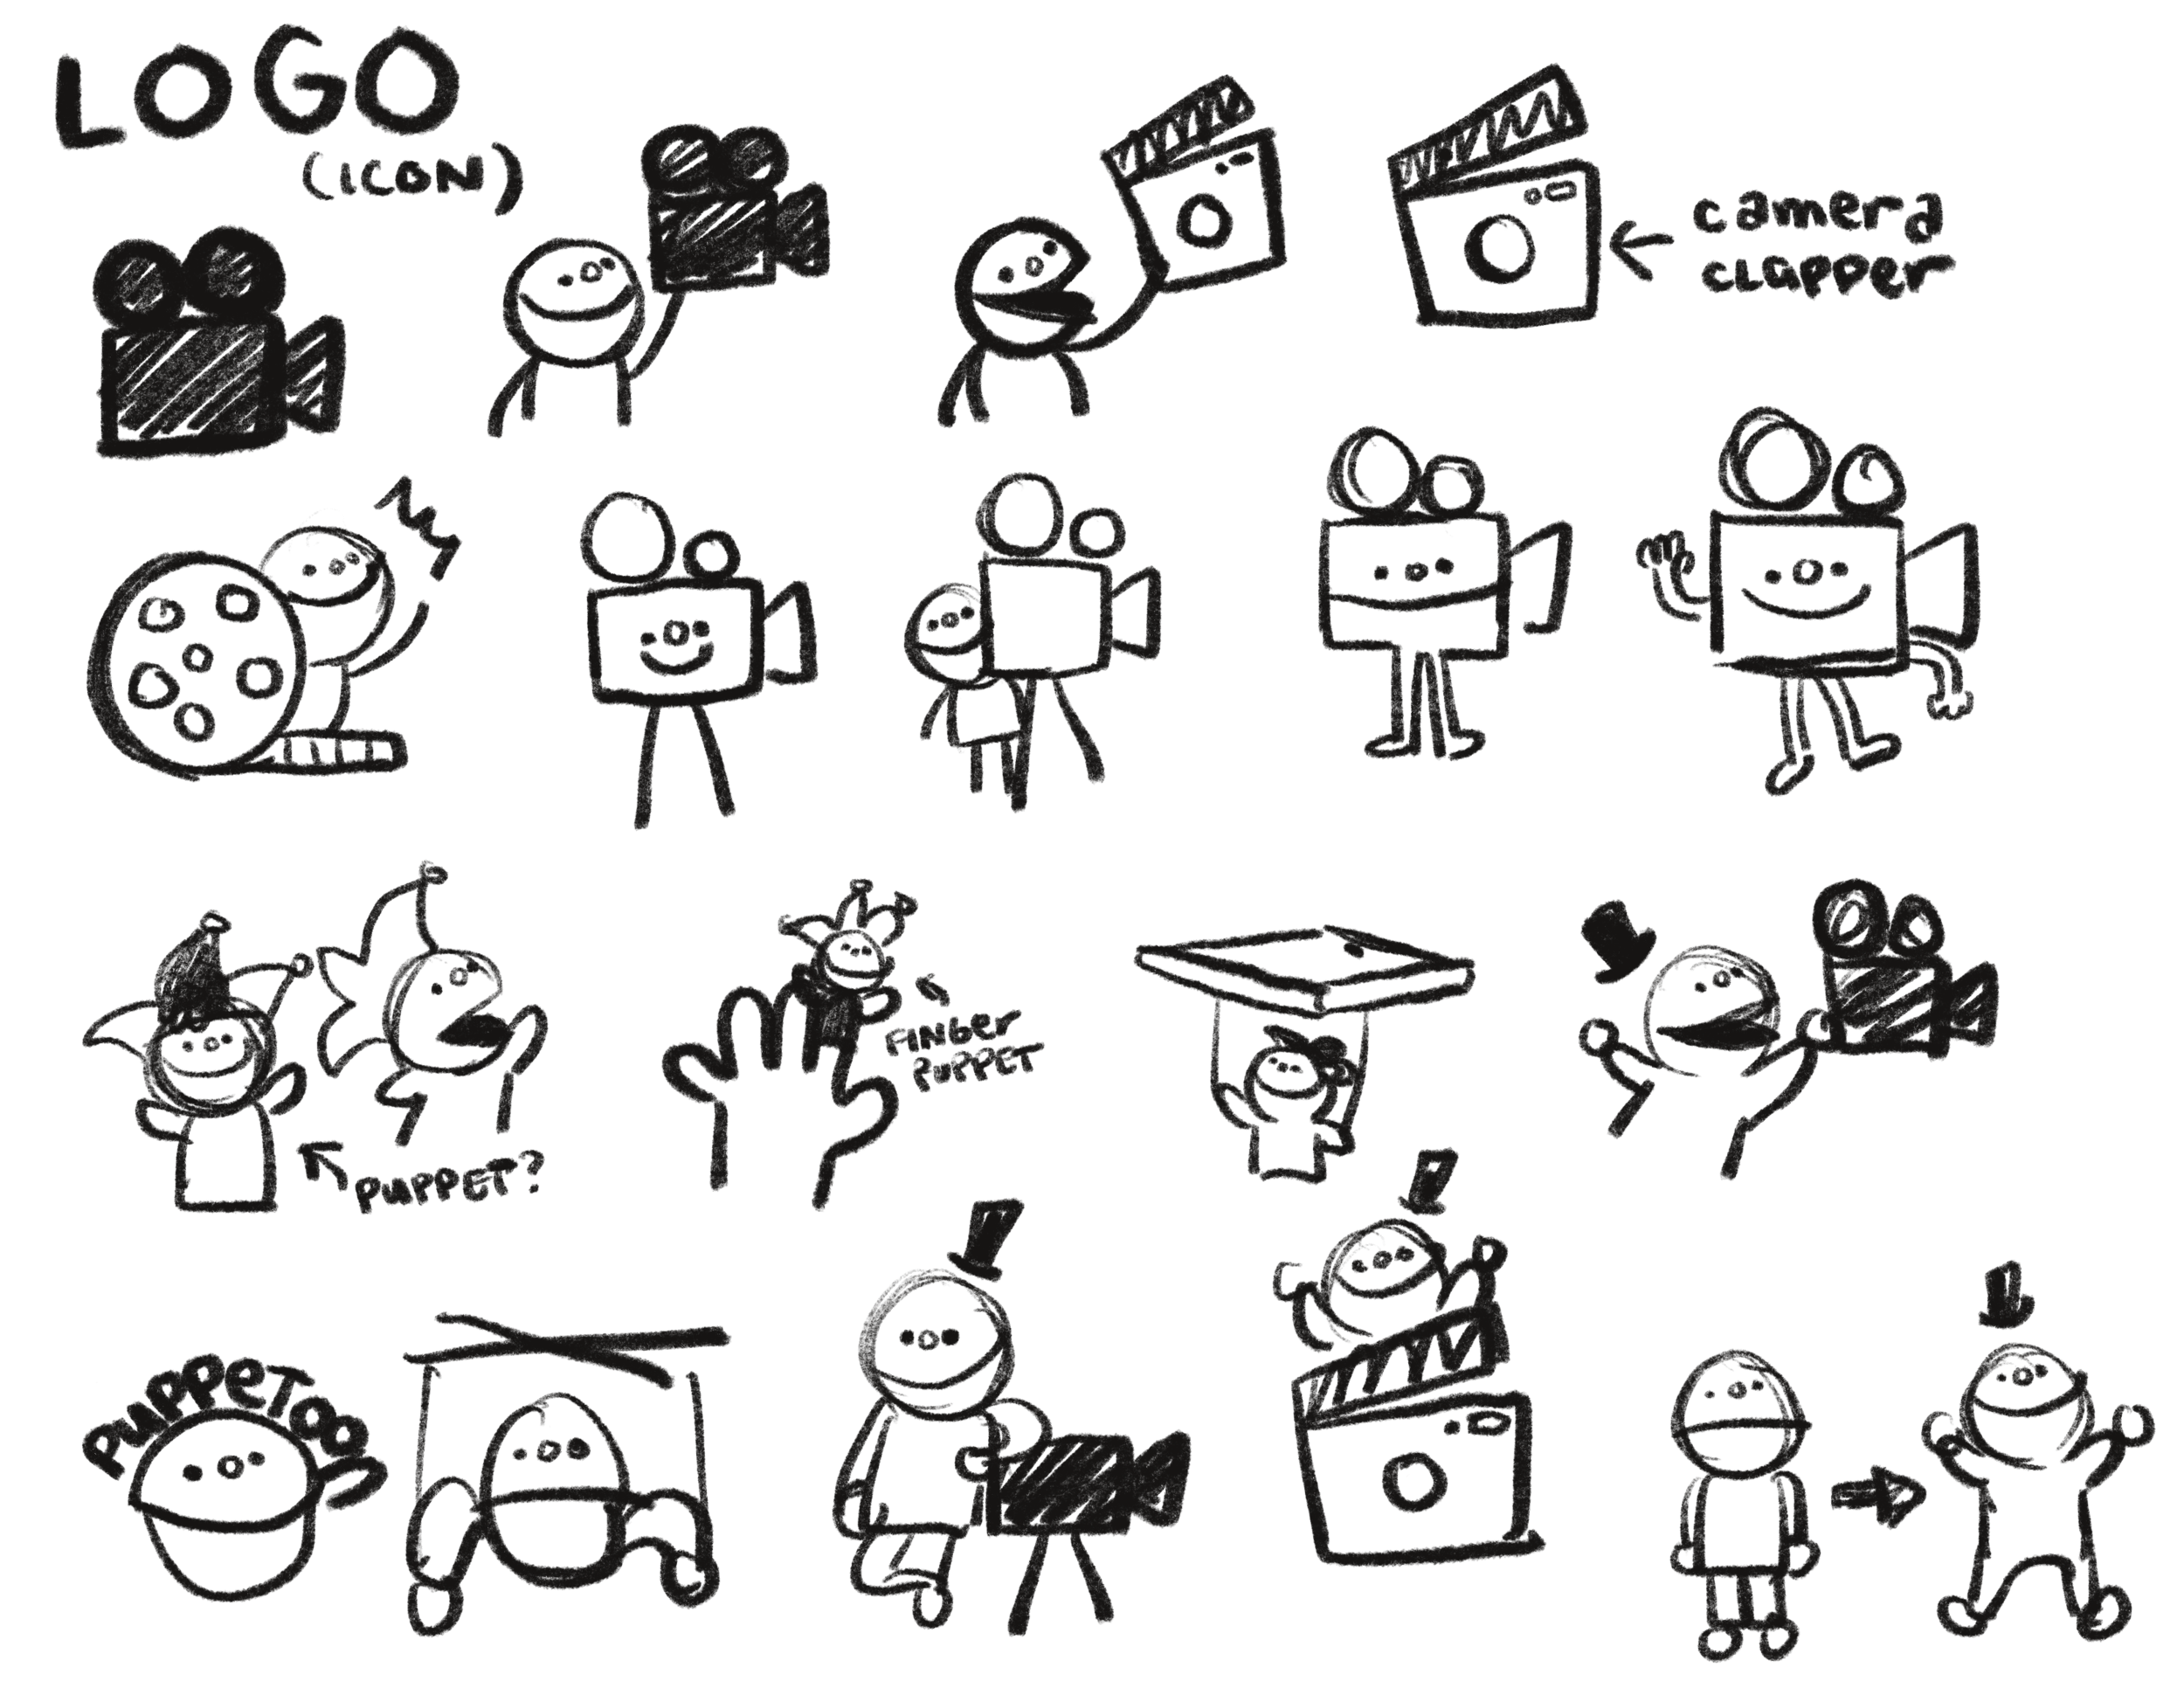 icon concepts.png